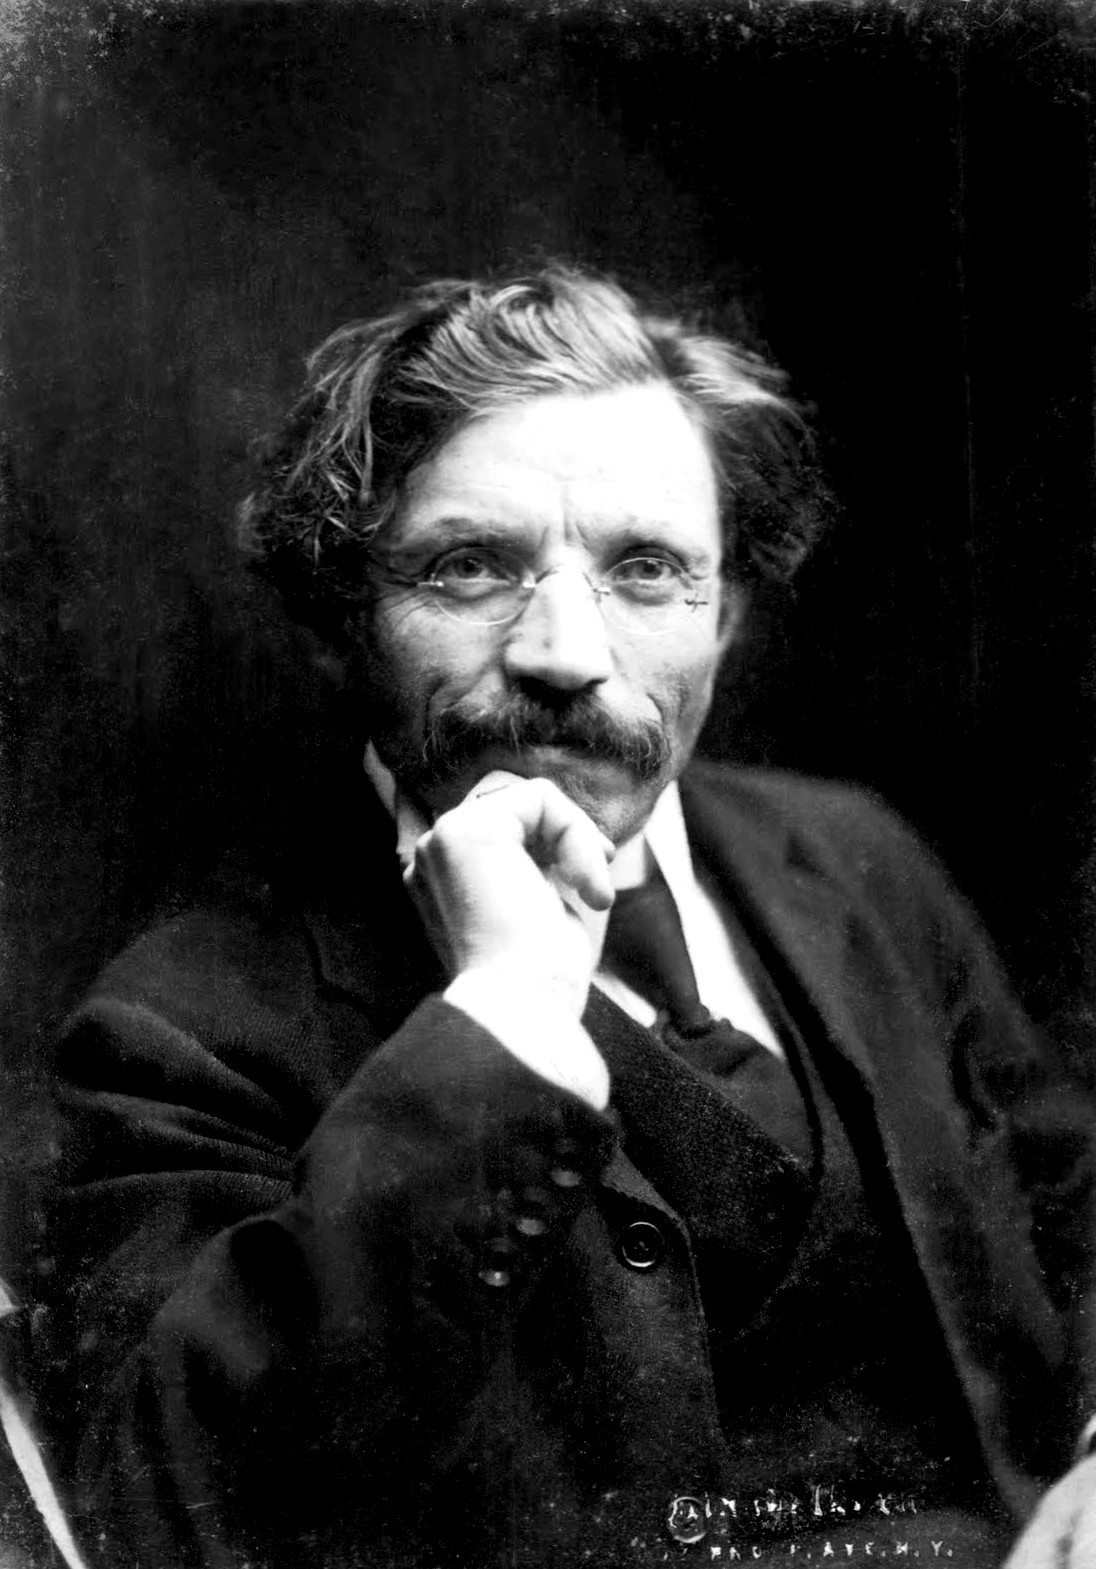 Portrait of the famous Jewish writer Sholem Aleichem in New York.